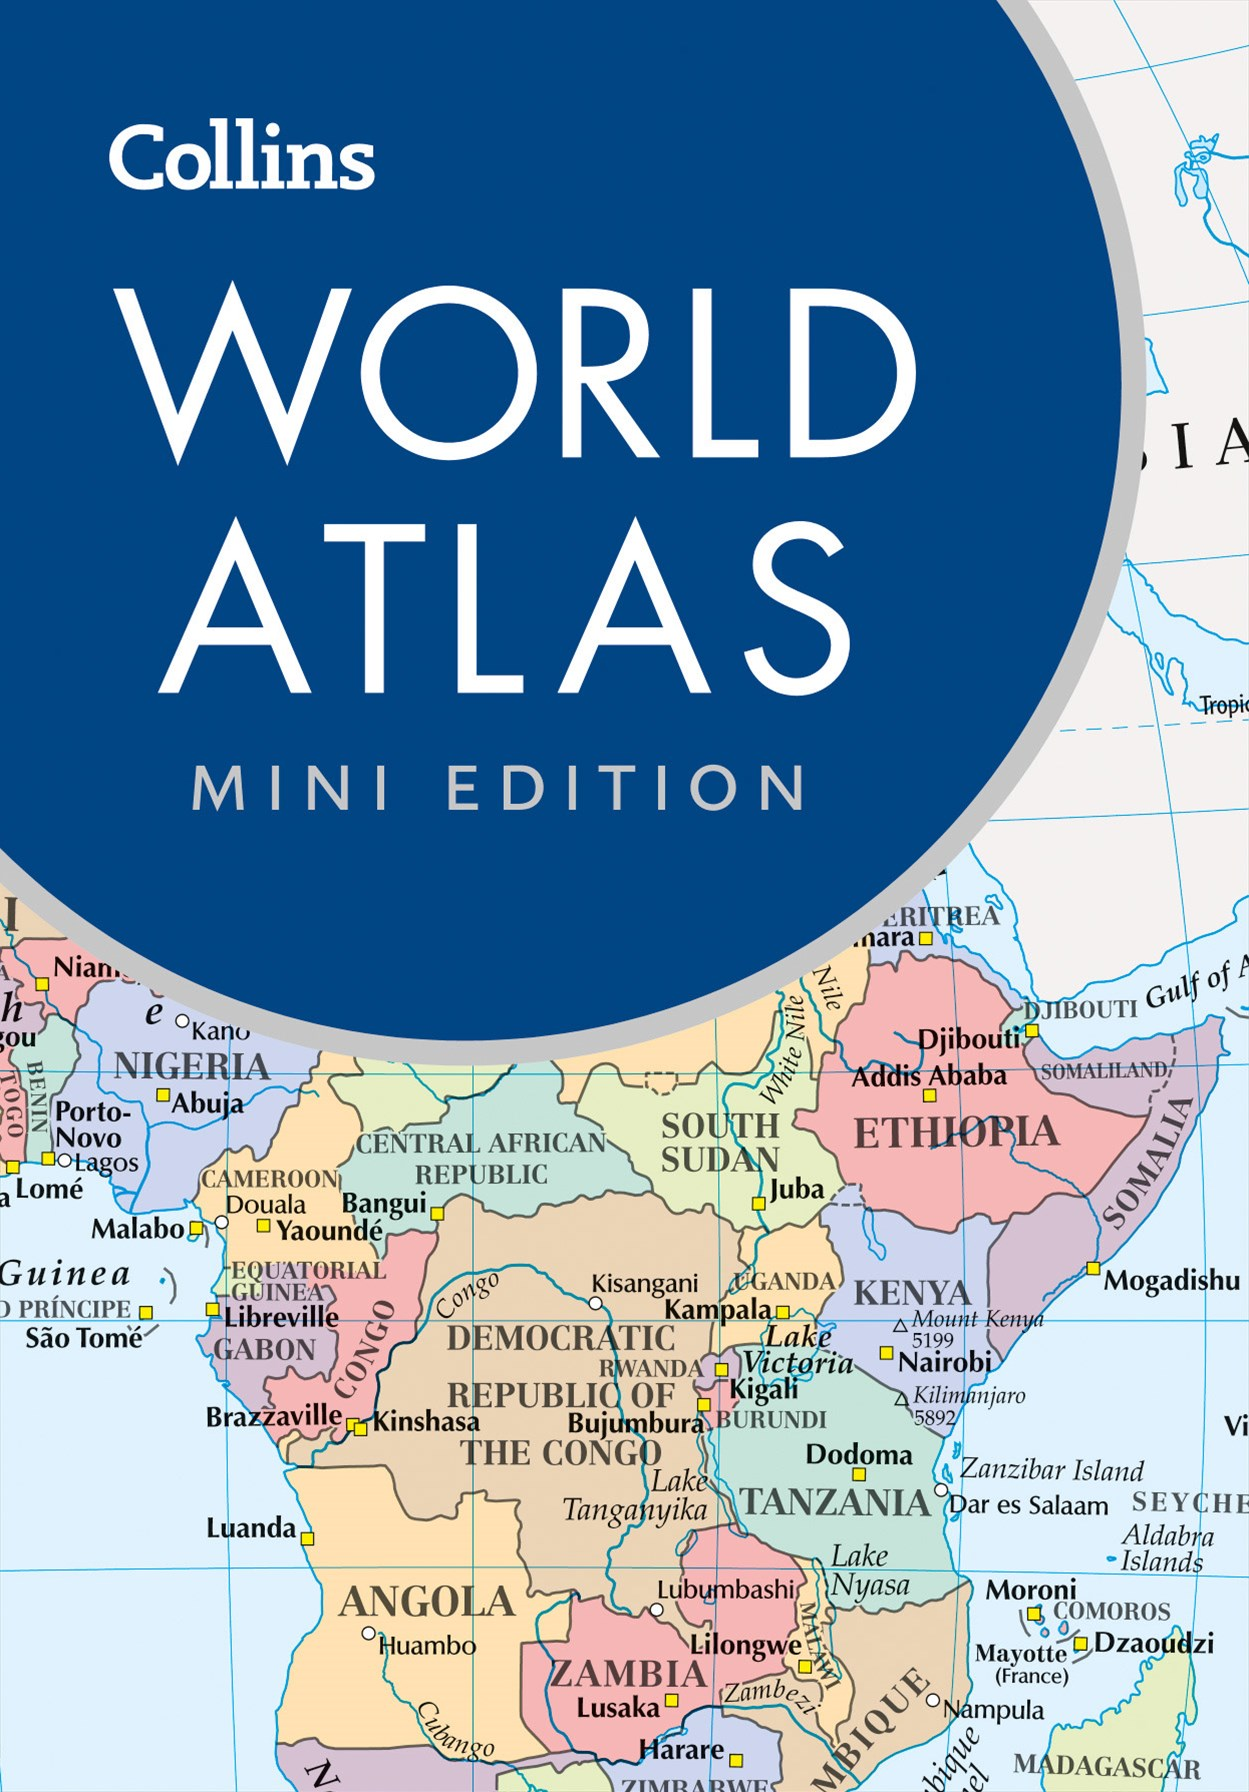 Collins World Atlas: Mini Edition [6th Edition]